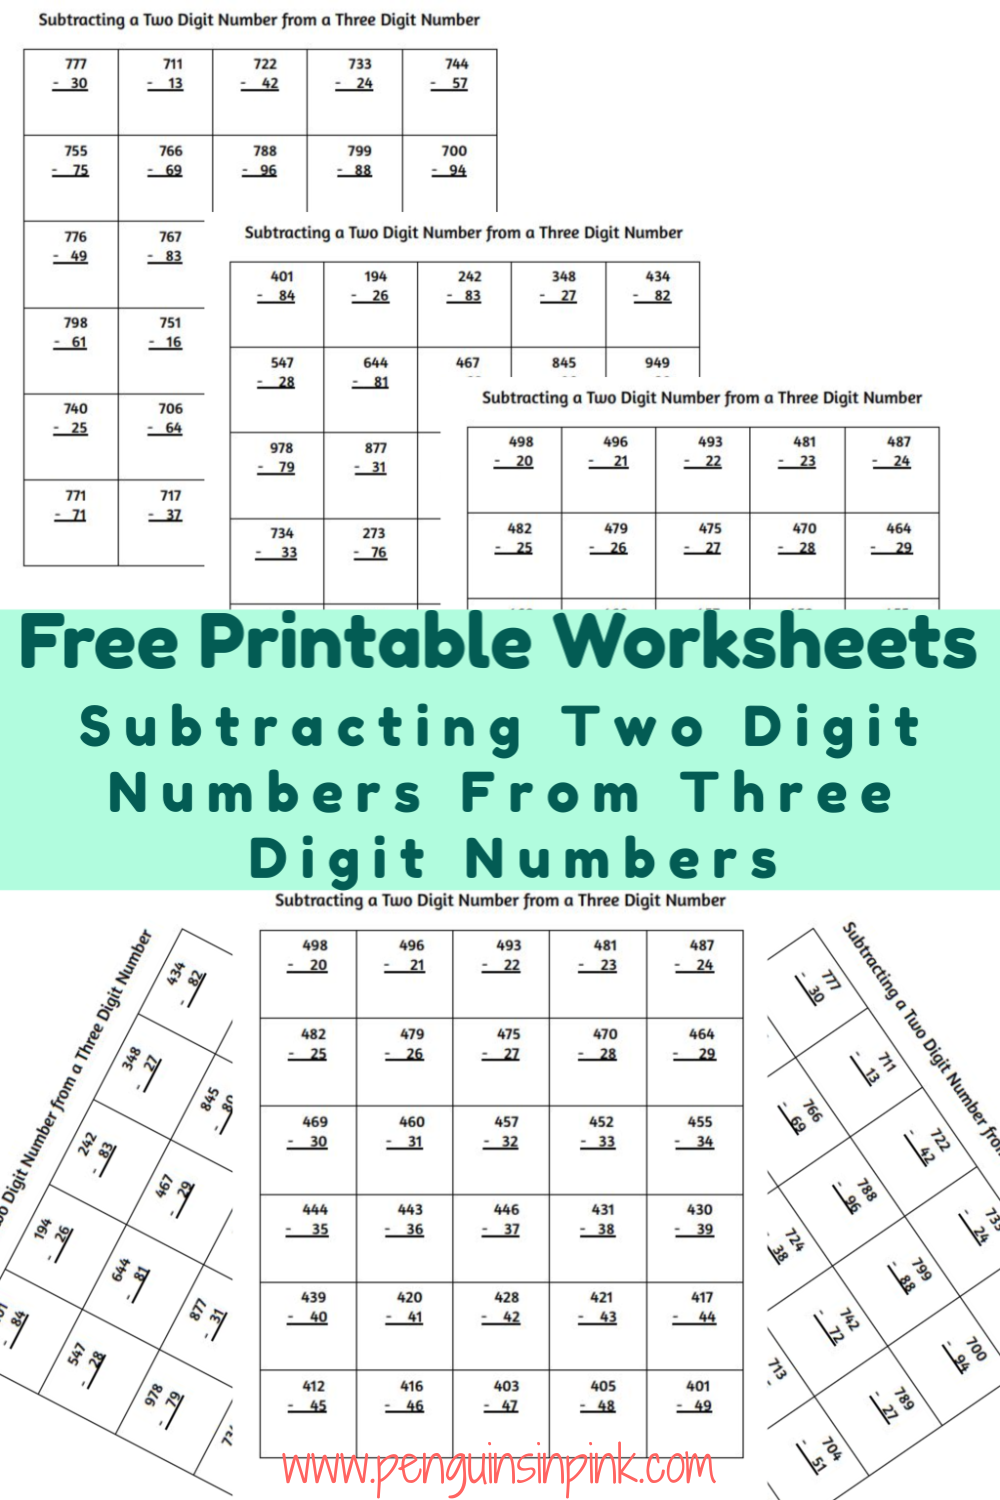 These FREE printable subtracting two digit numbers from three digit numbers worksheets contain 13 pages of subtraction from 100 to 999. Each page of the packet contains 30 problems.